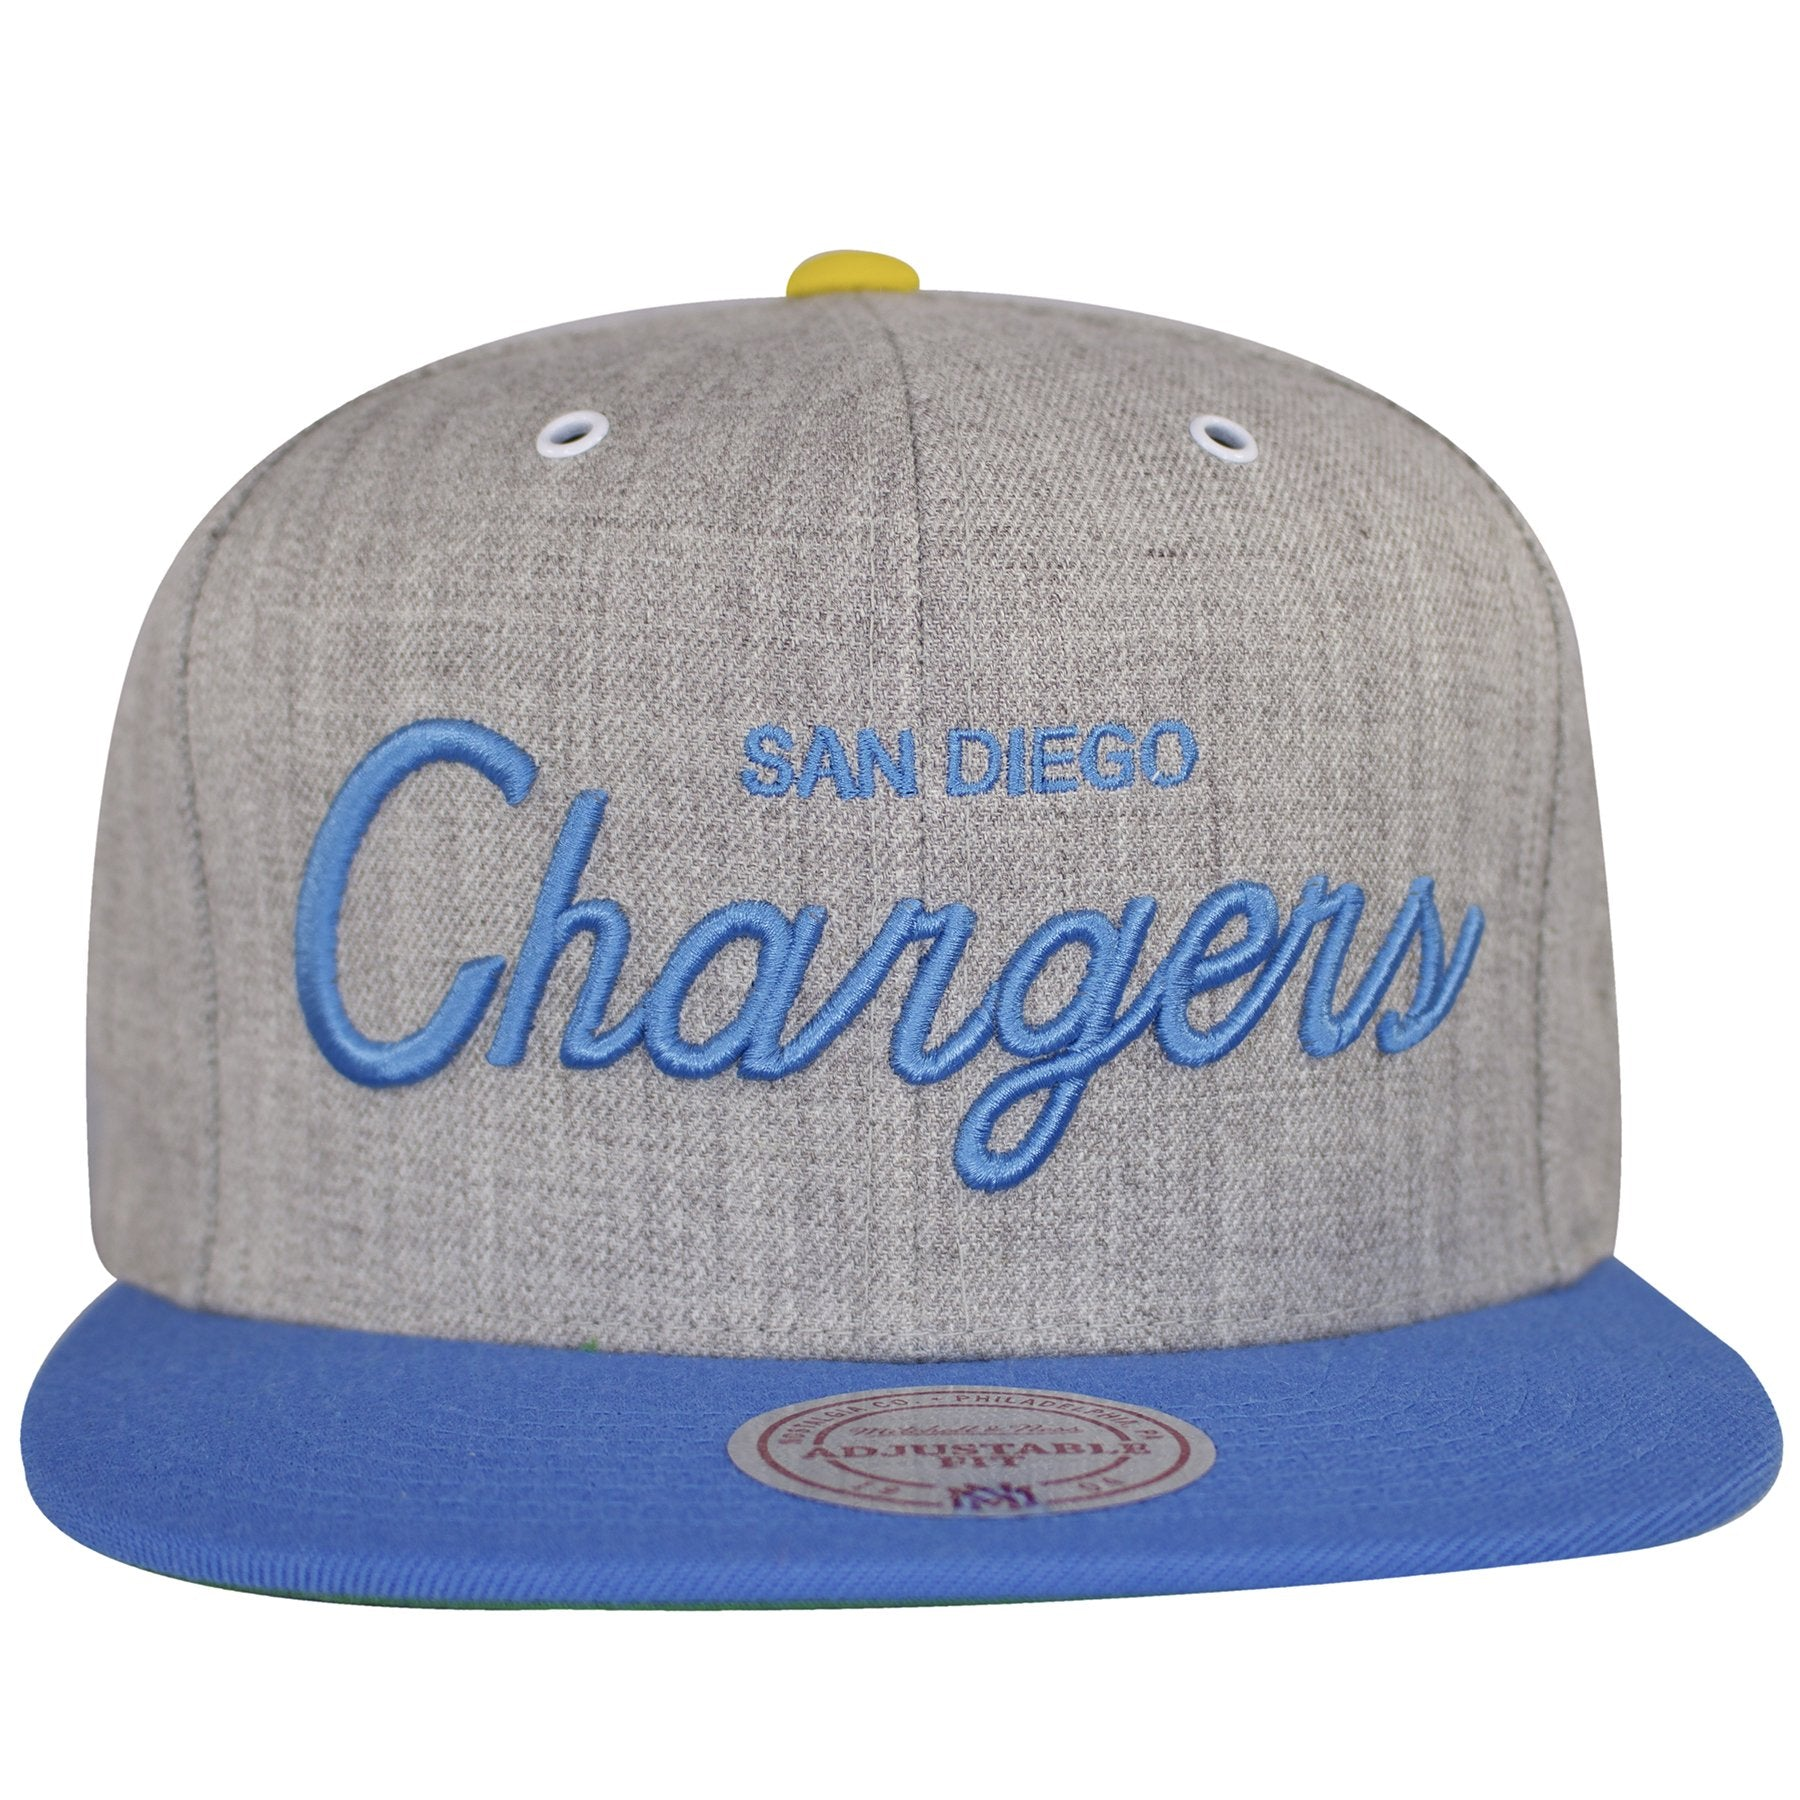 sale retailer c5fa0 44d9f Heather Gray structured snapback with powder blue flat brim. This San Diego  Chargers Vintage Snapback